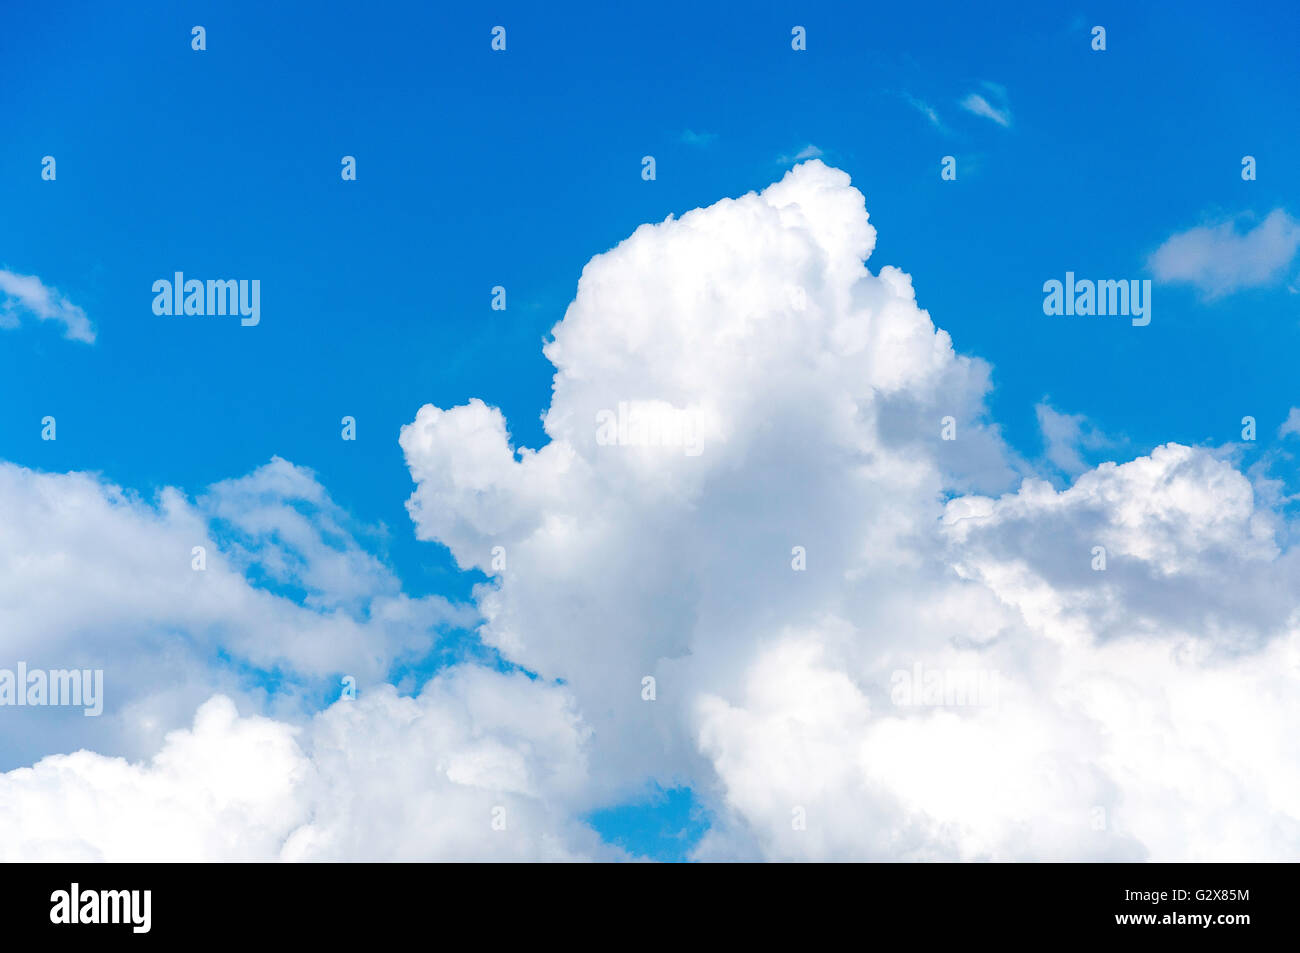 White cumulus clouds and blue sky, Surrey, England, United Kingdom - Stock Image